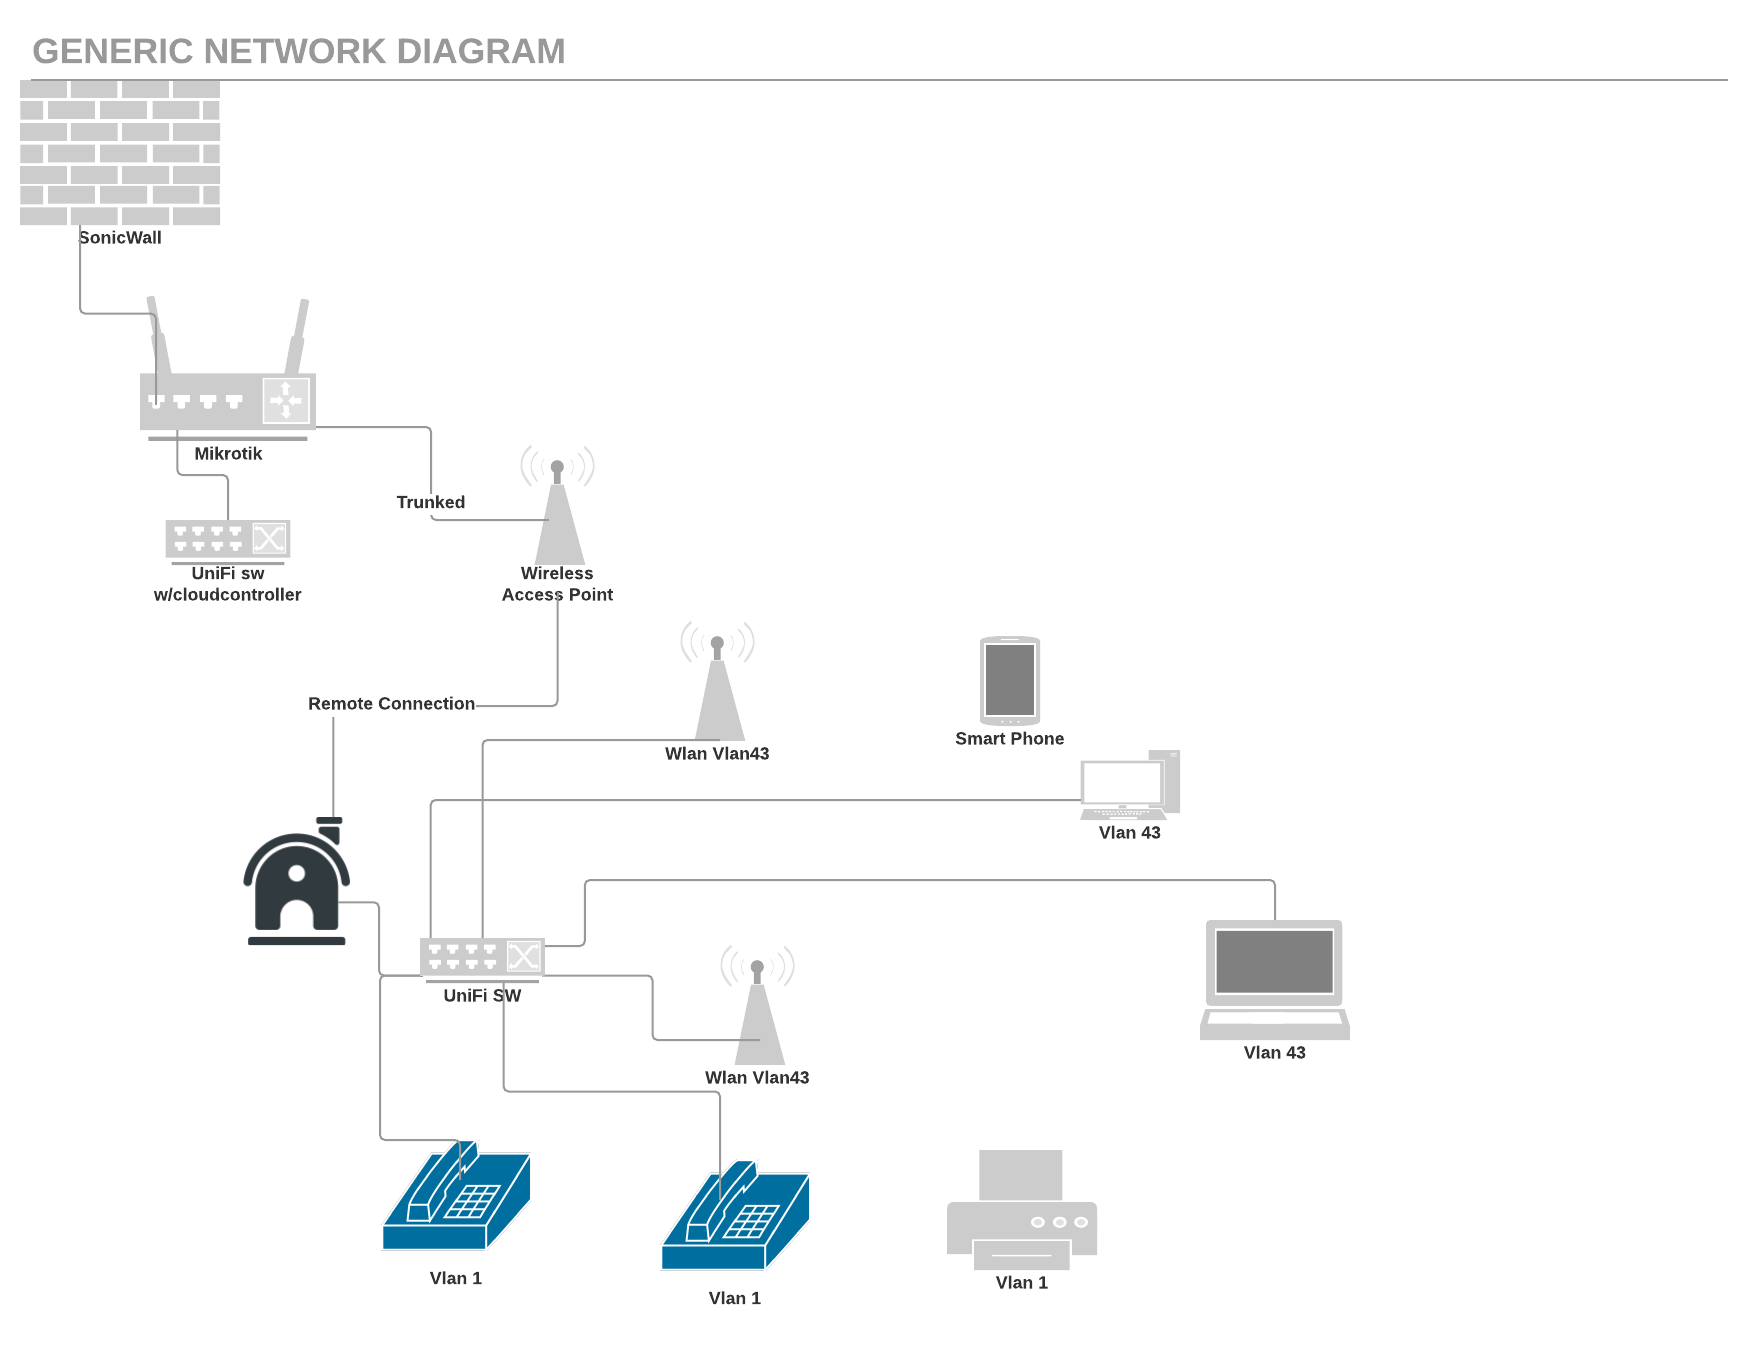 Wiring Diagram Unifi Usgpro4 Free Download Ubiquiti Subnet And Vlan On Cloud Controller Is Not Passing Traffic Basic Electrical Diagrams At